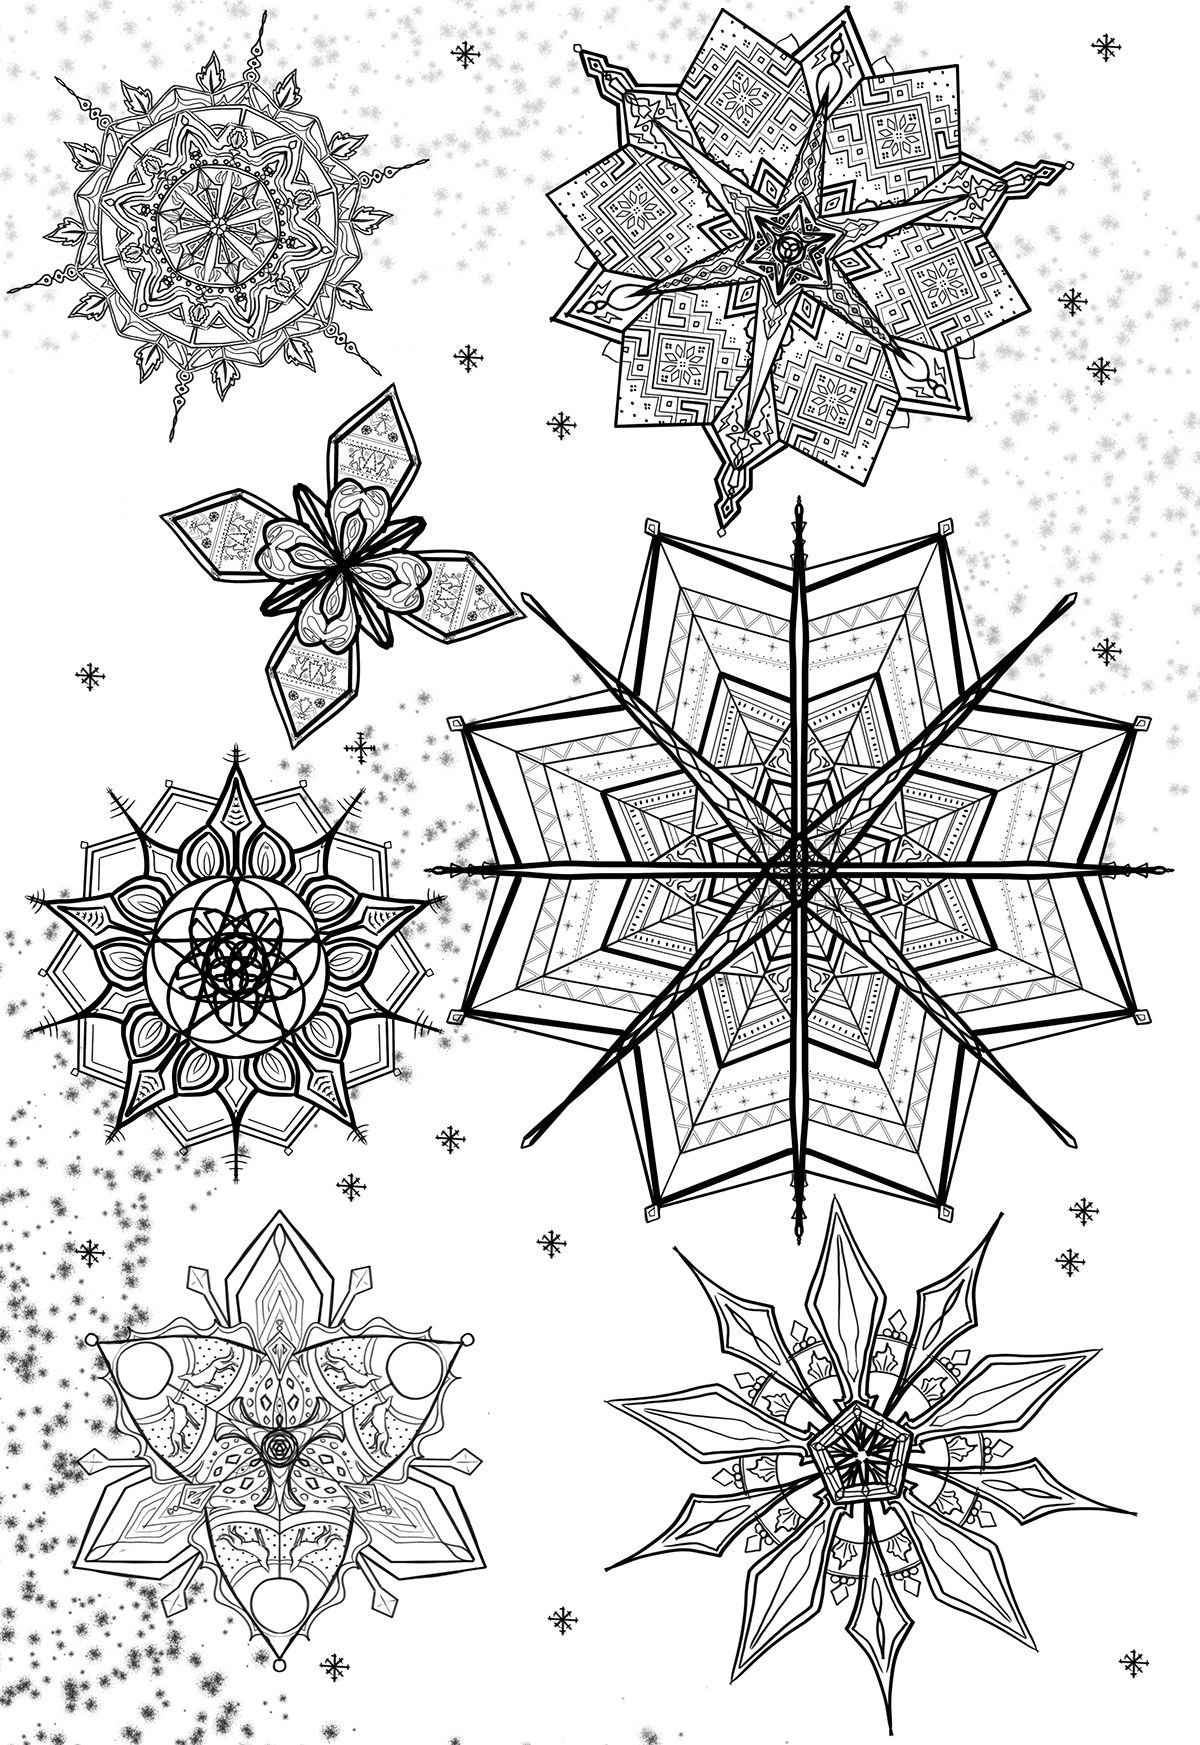 Snowflake Colouring Page On Behance Coloring Pages Snowflake